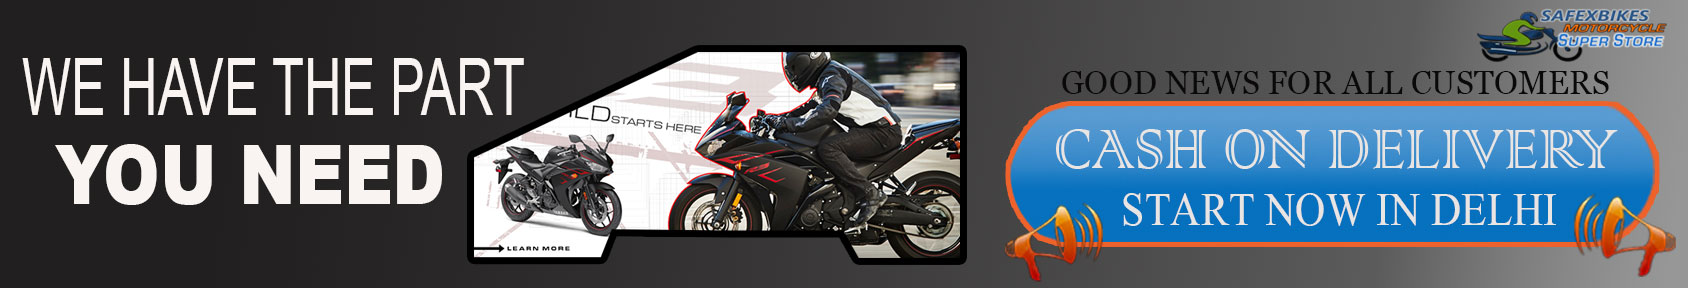 Special offers on Genuine Motorcycle Spare Parts And Accessories - Cash On delivery